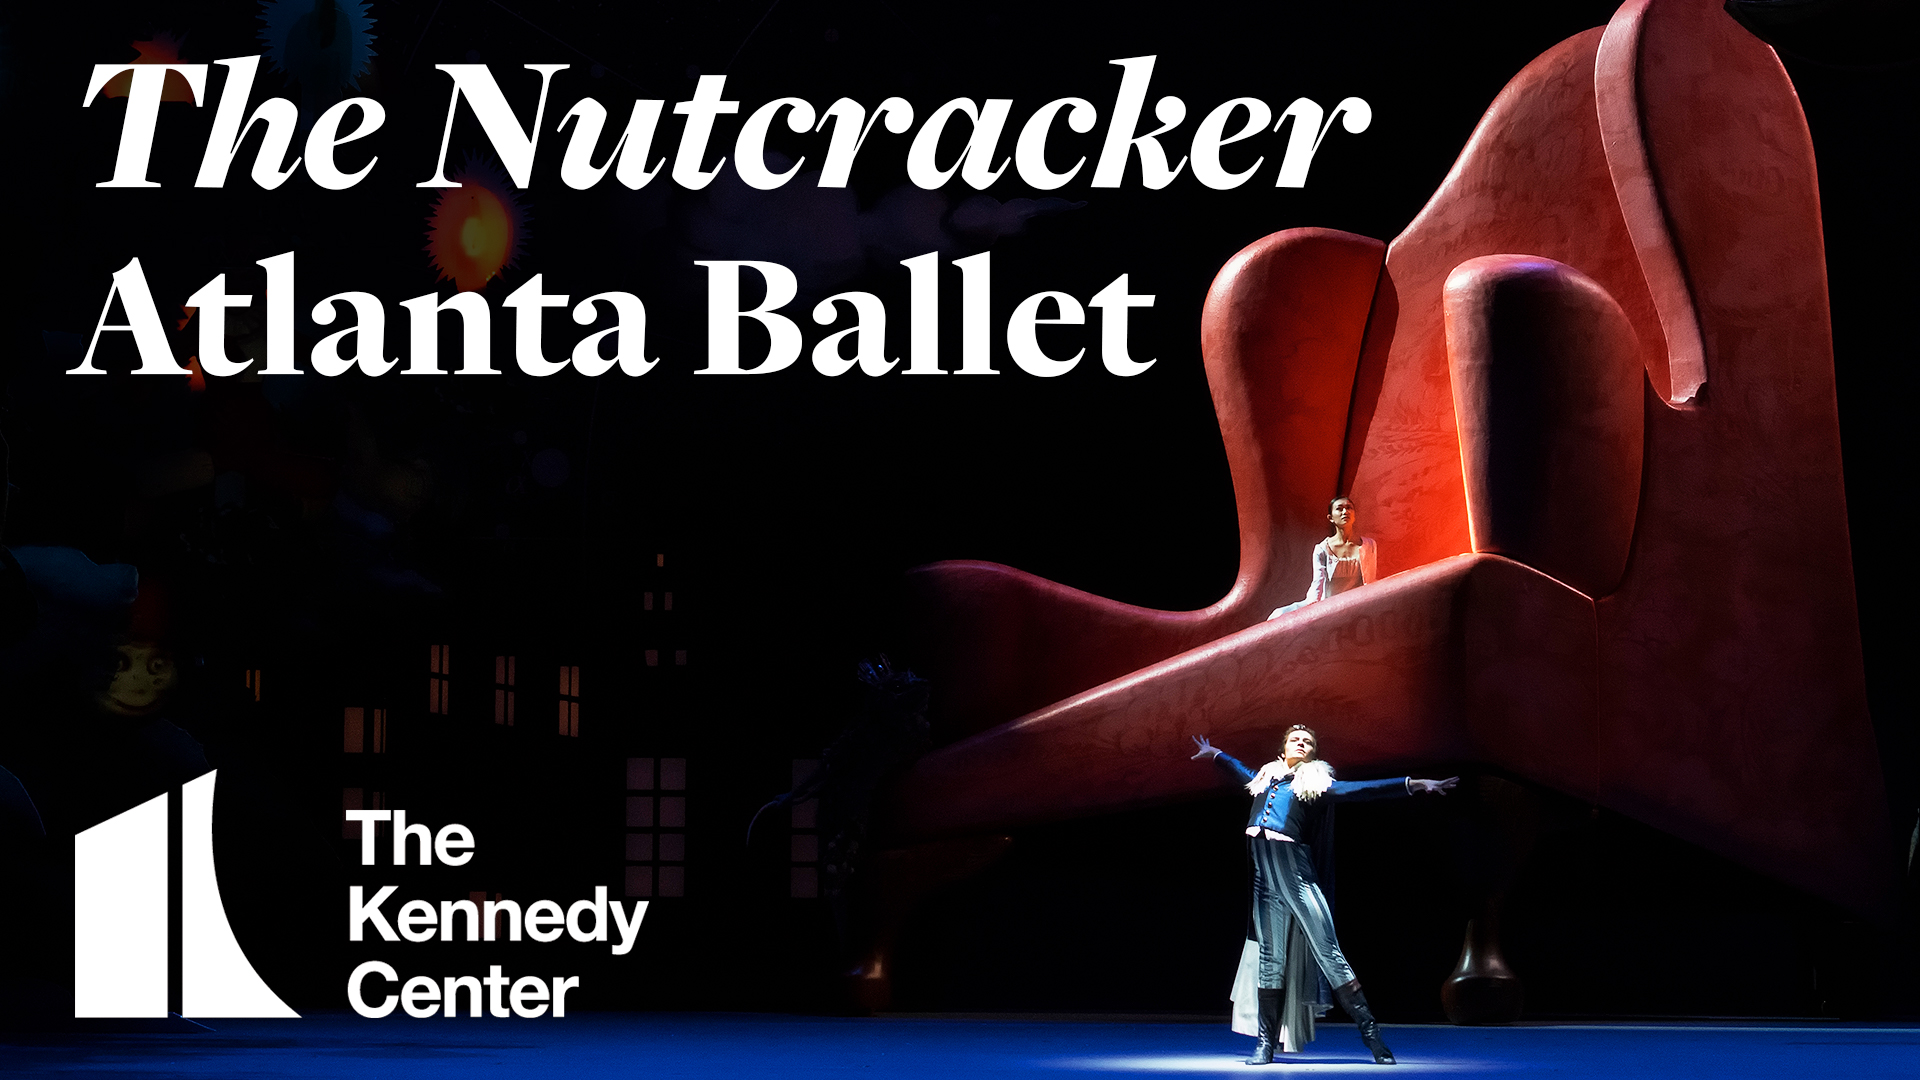 Atlanta Ballet: The Nutcracker | Nov. 27 - Dec. 1 | The Kennedy Center